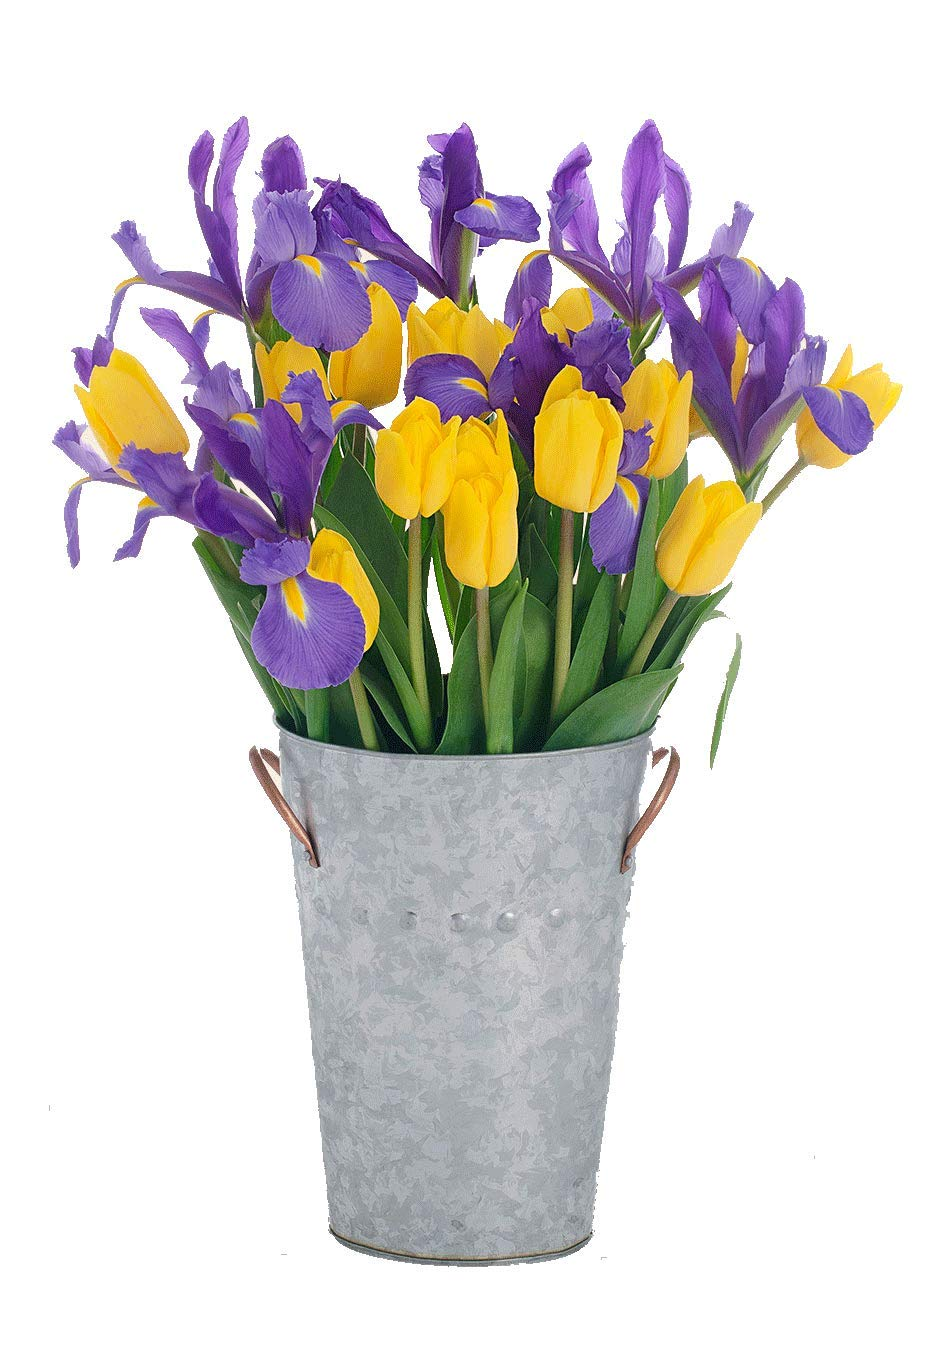 Stargazer Barn - Butterfly Bouquet - 2 Dozen Tulips & Iris with French Bucket Style Vase - Farm Fresh by Stargazer Barn